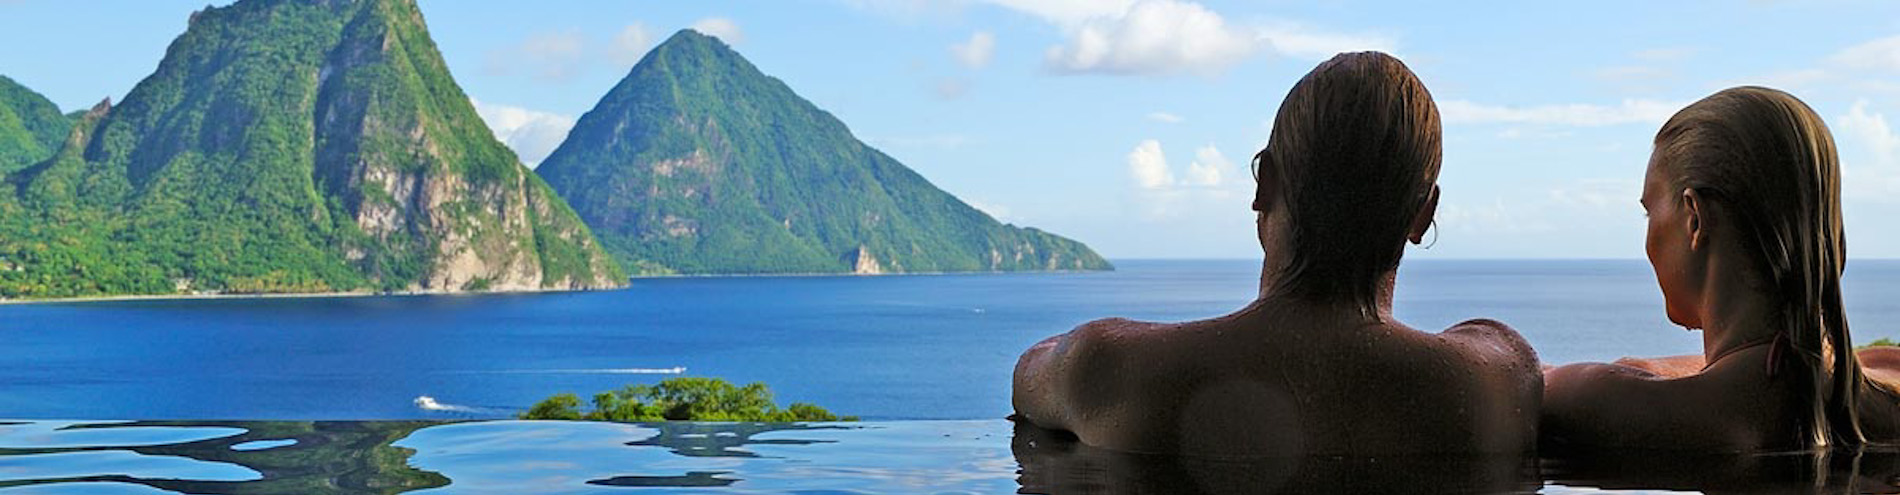 Jade Mountain St Lucia Villas